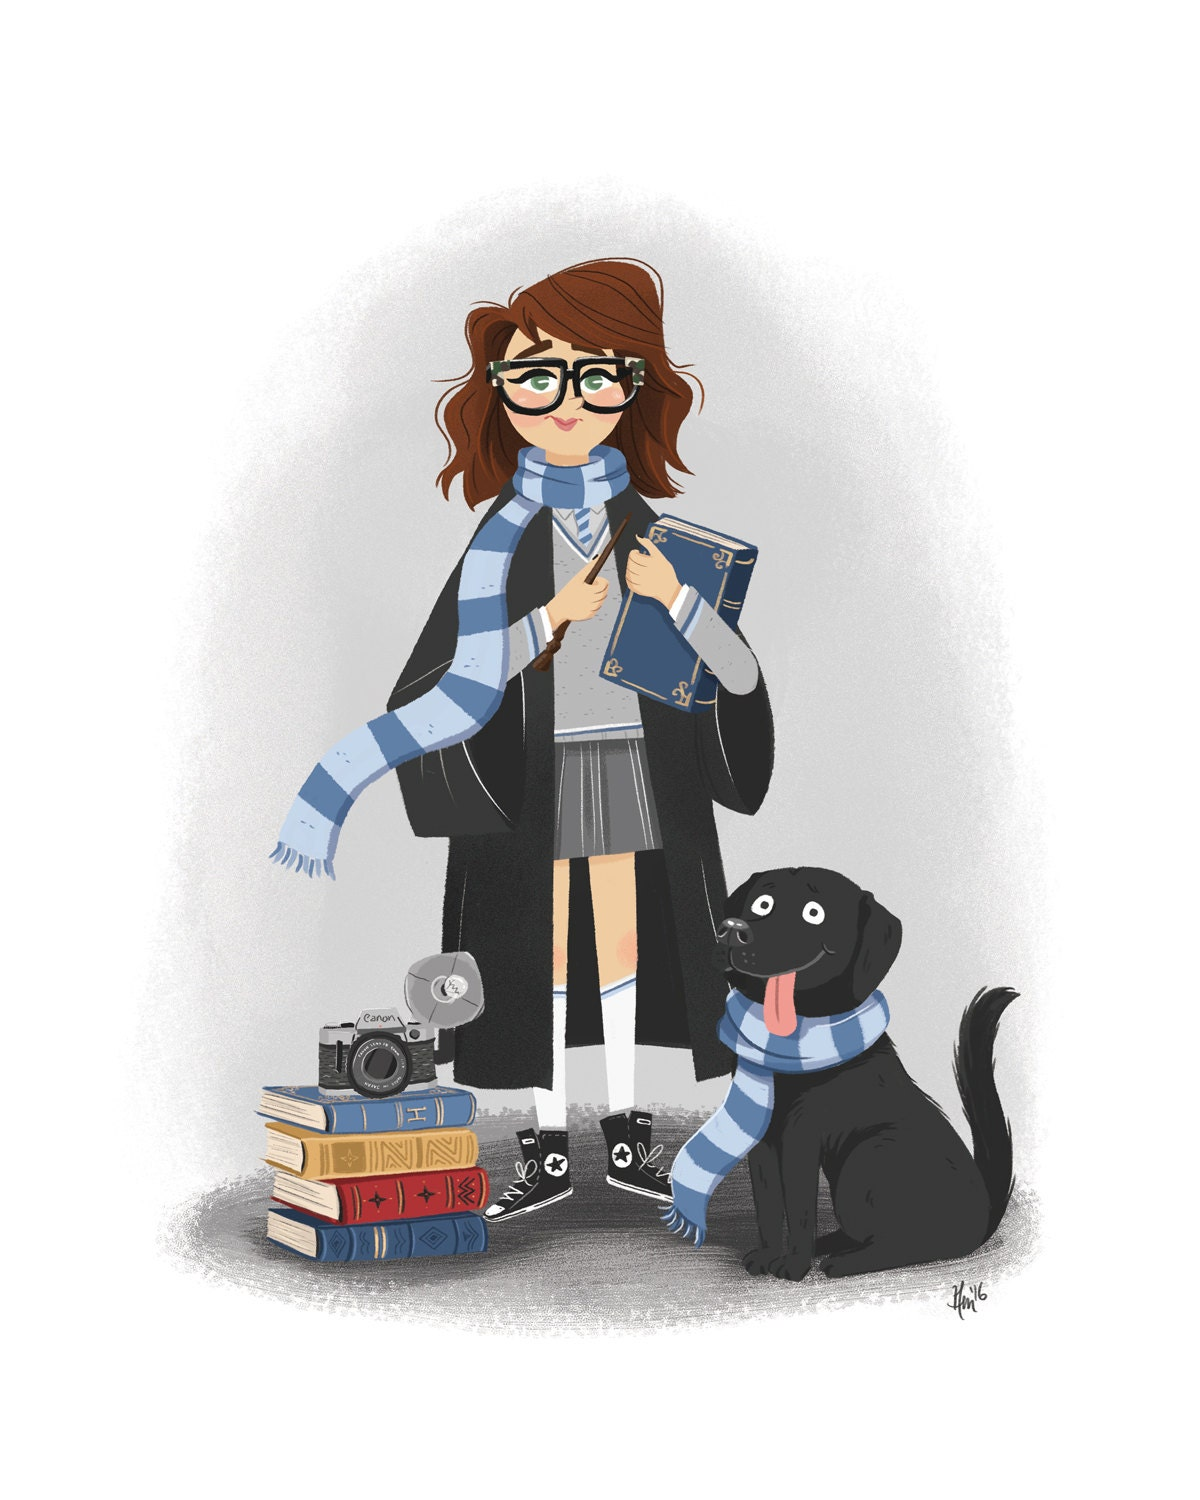 ravenclaw dating gryffindor I know that gryffindor and slytherin have potions, flying, and care of magical creatures together, so i assume that hufflepuff and ravenclaw have those classes together.